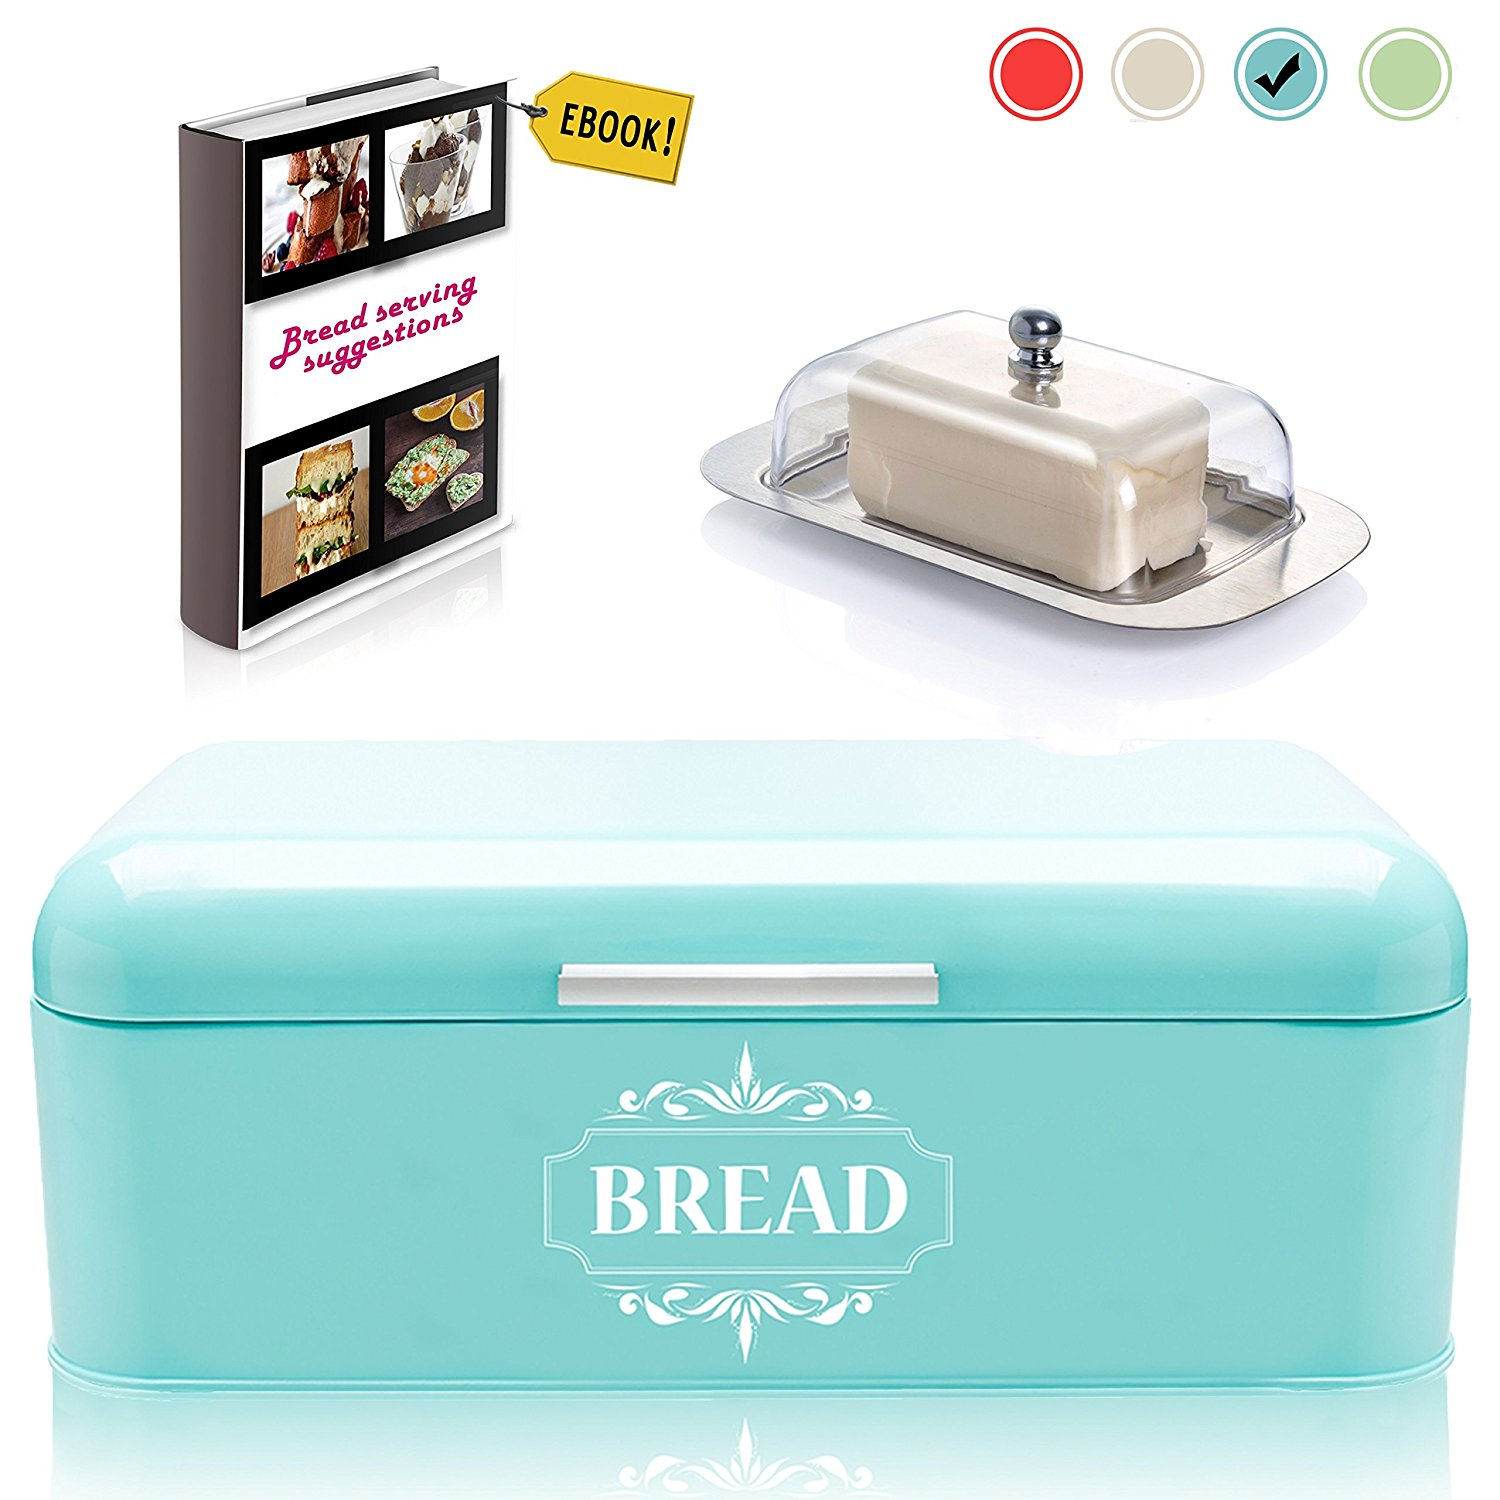 """Vintage Bread Box For Kitchen Stainless Steel Metal in Retro Turquoise Blue +"